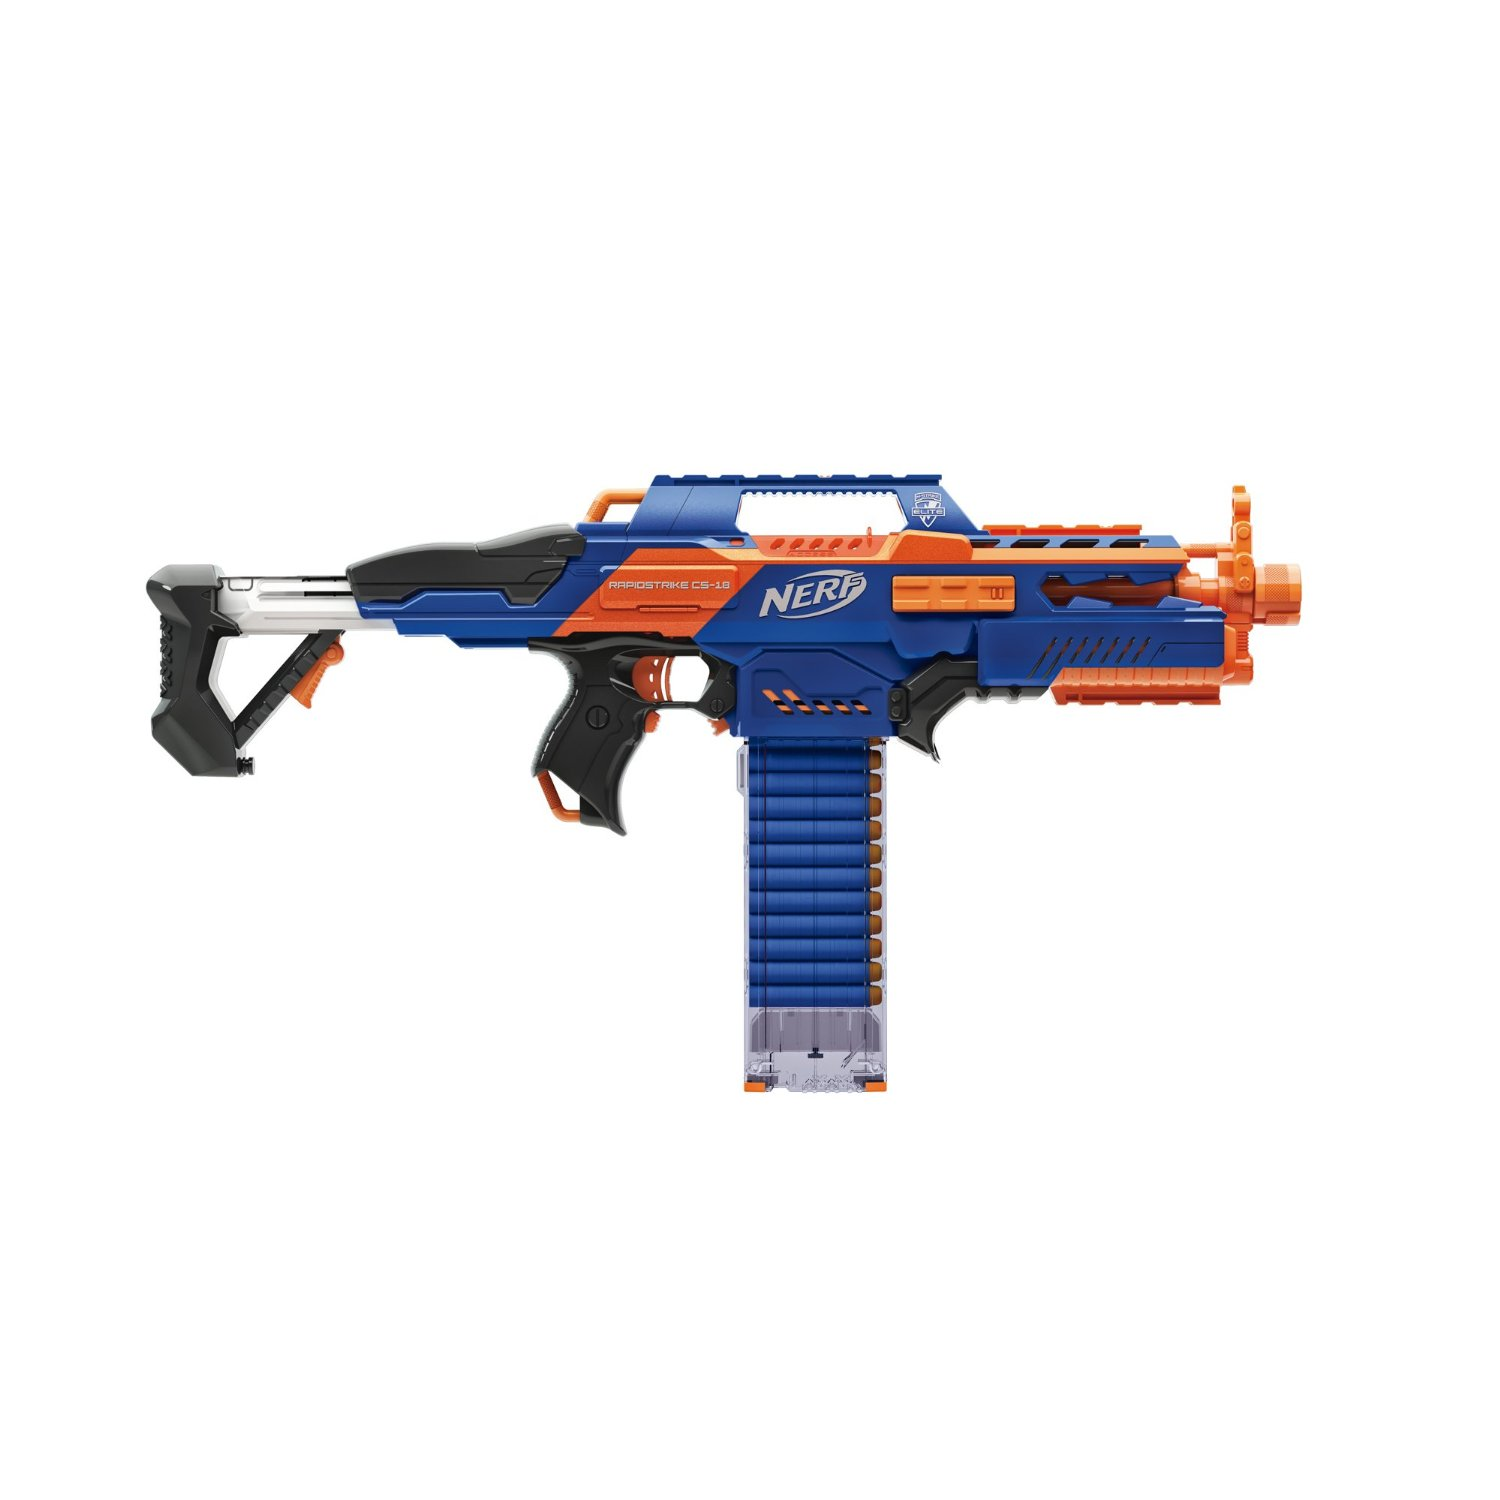 nerf-n-strike-elite-rapidstrike-cs-18-blaster